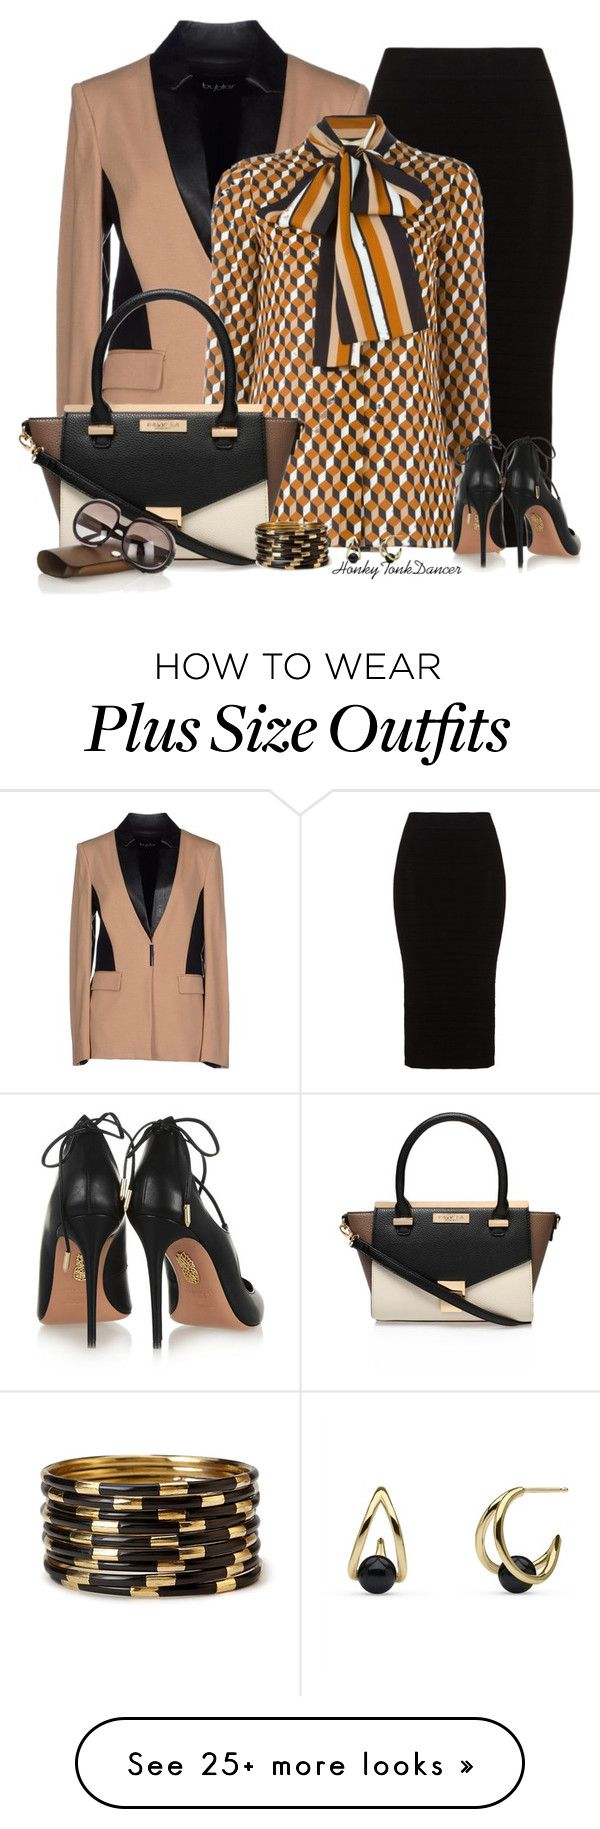 """""""Black,Brown And Cream"""" by honkytonkdancer on Polyvore featuring byblos, Mat, Xirena, Carvela Kurt Geiger, Aquazzura, Forever 21, women's clothing, women, female and woman"""